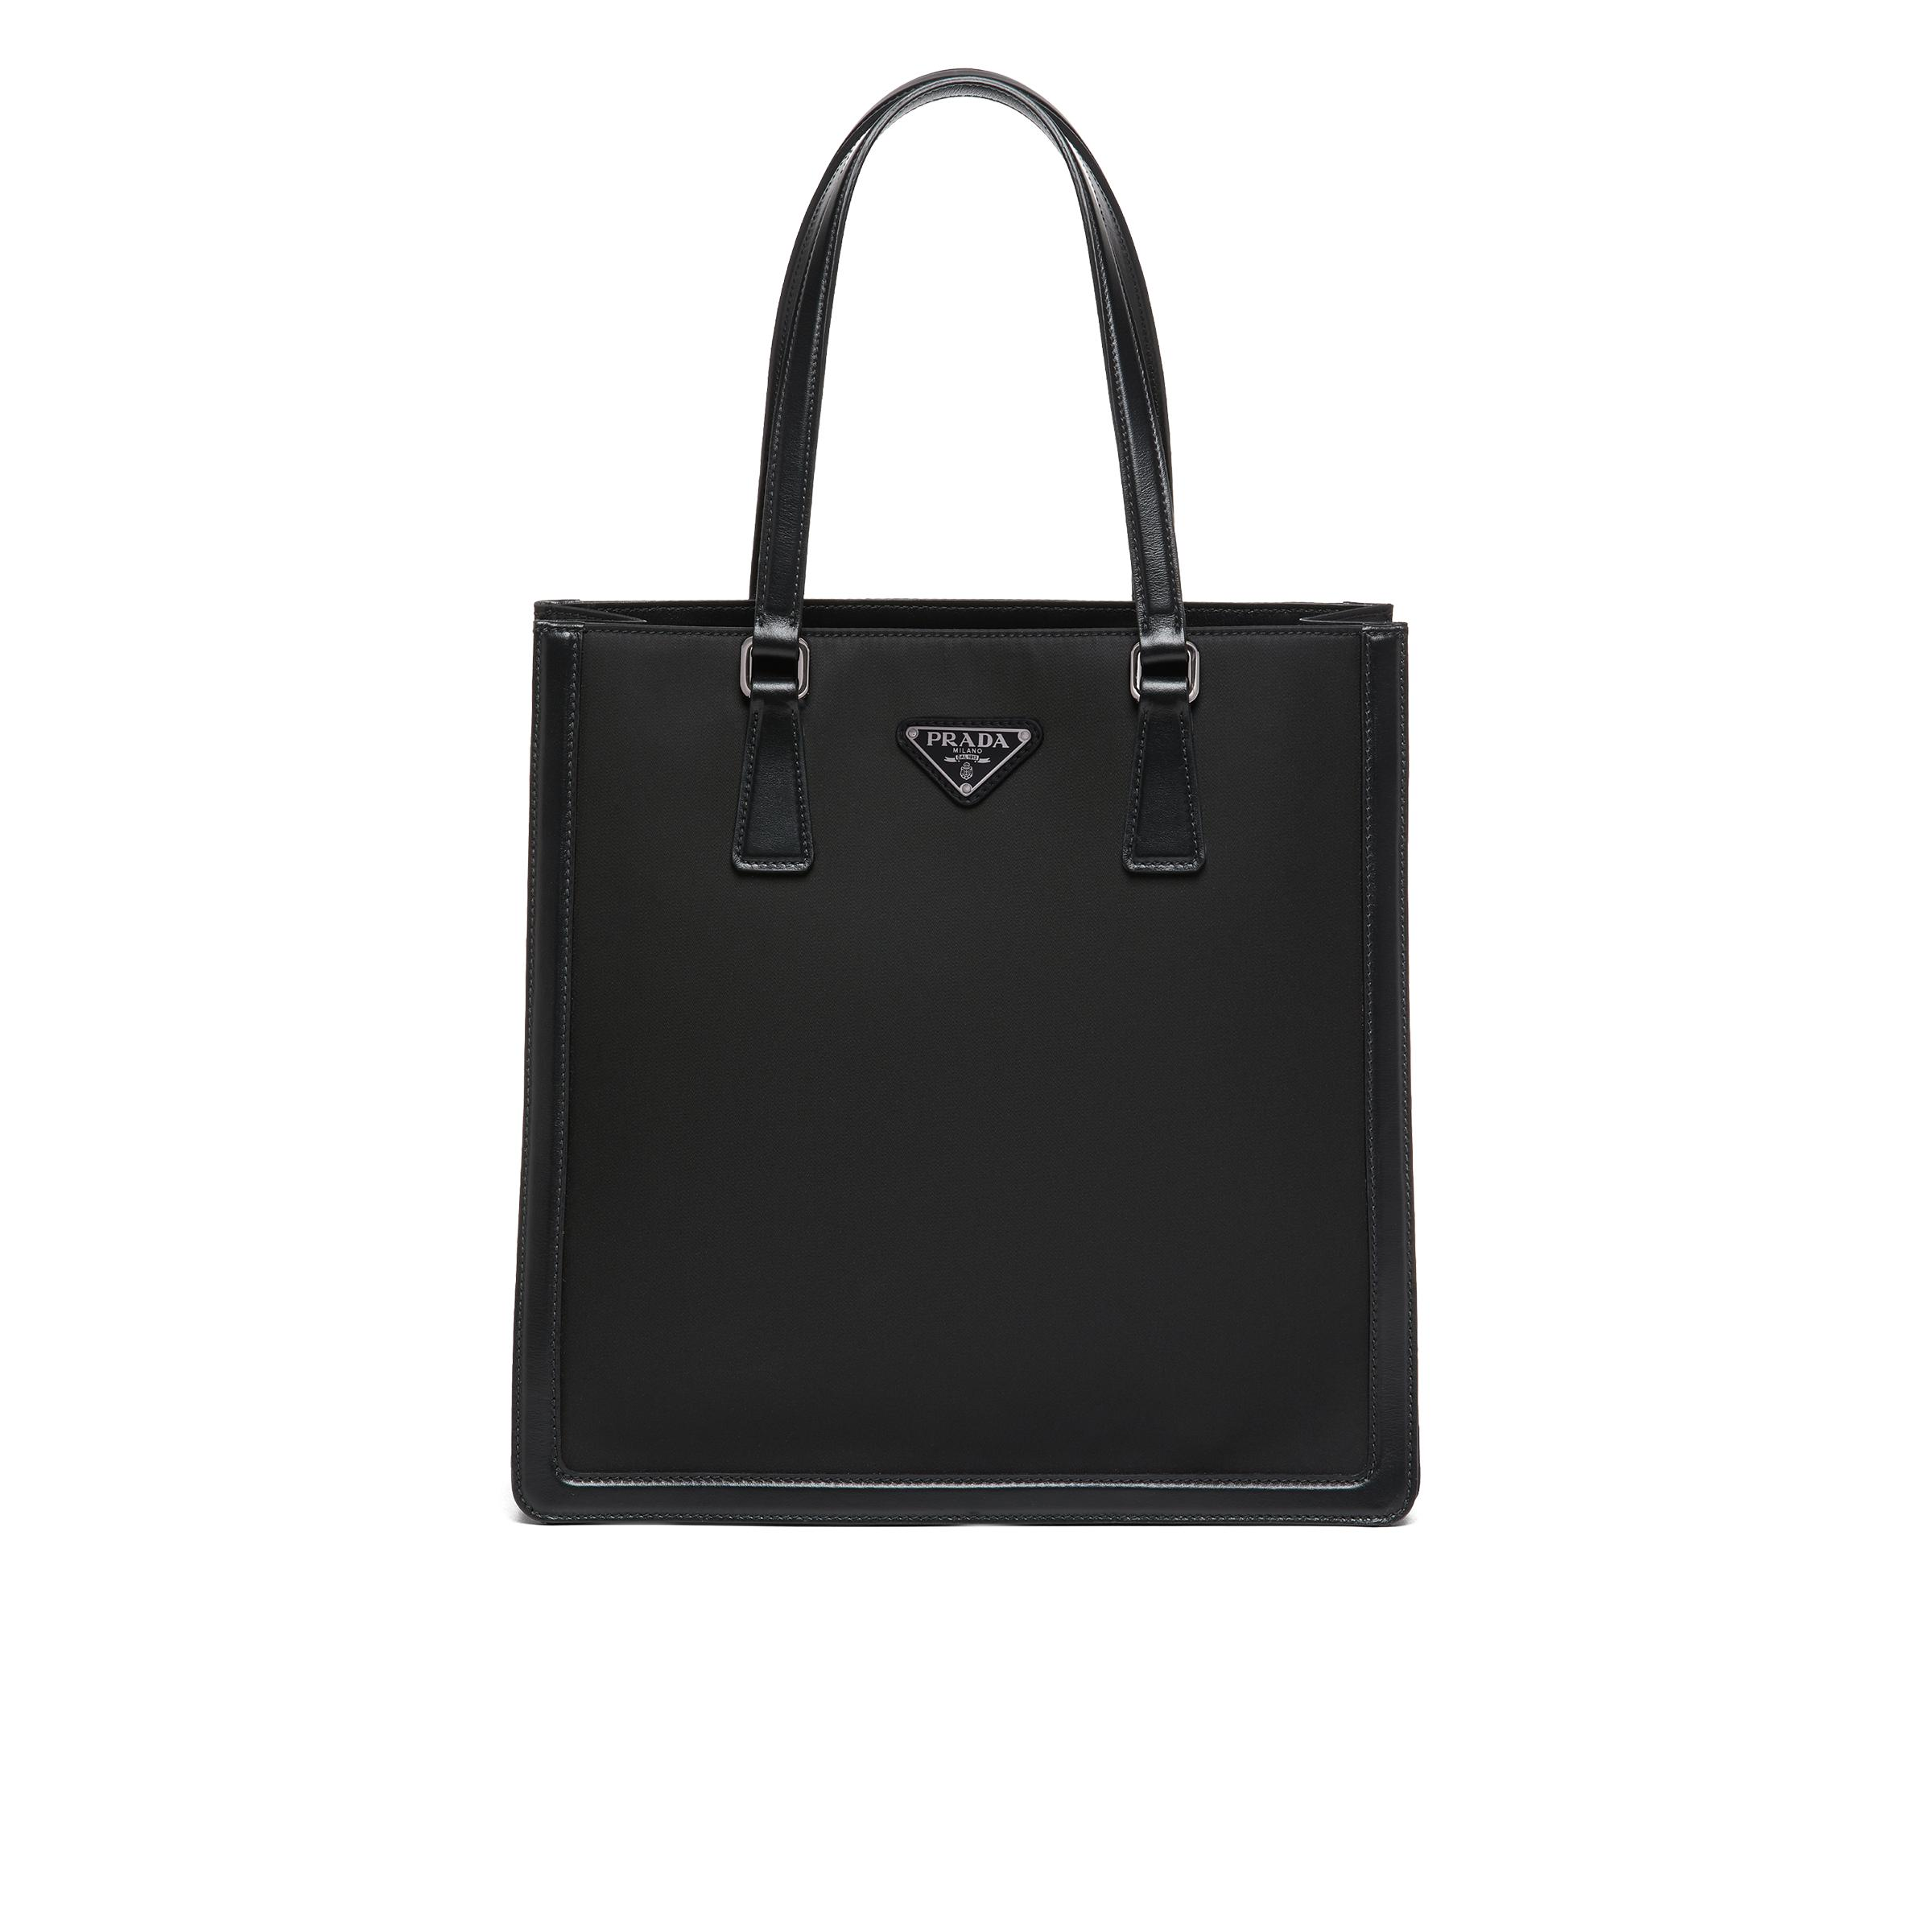 Leather And Nylon Tote Bag Women Black